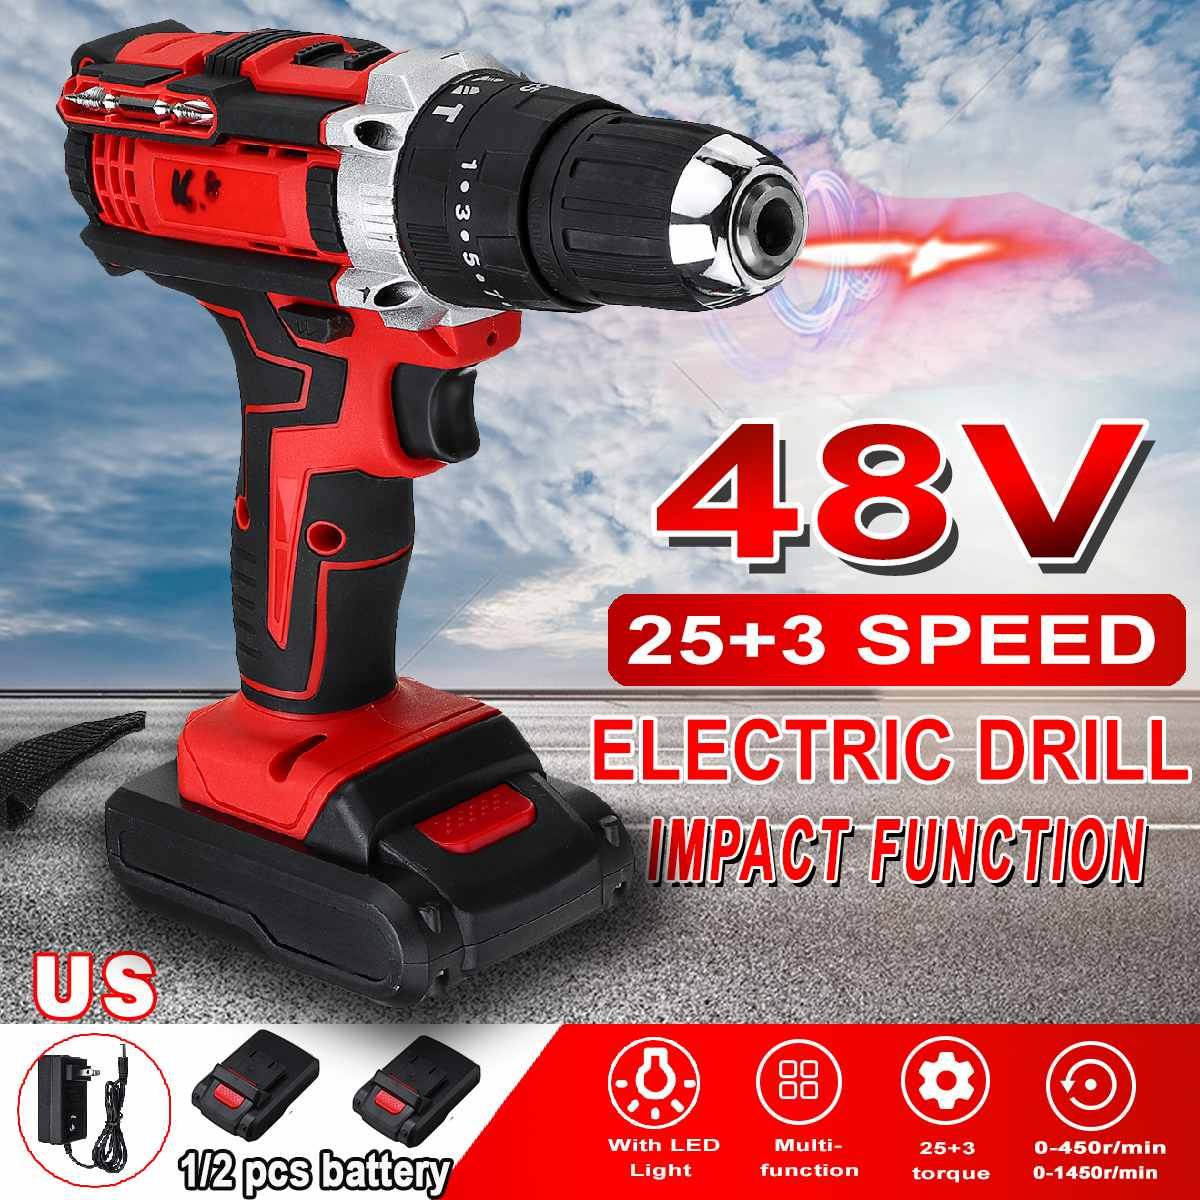 48V 25+3 Torque 2-Speed Cordless Electric Screwdriver Impact Drill Rechargeable Wireless Power Driver DC Lithium-Ion Battery